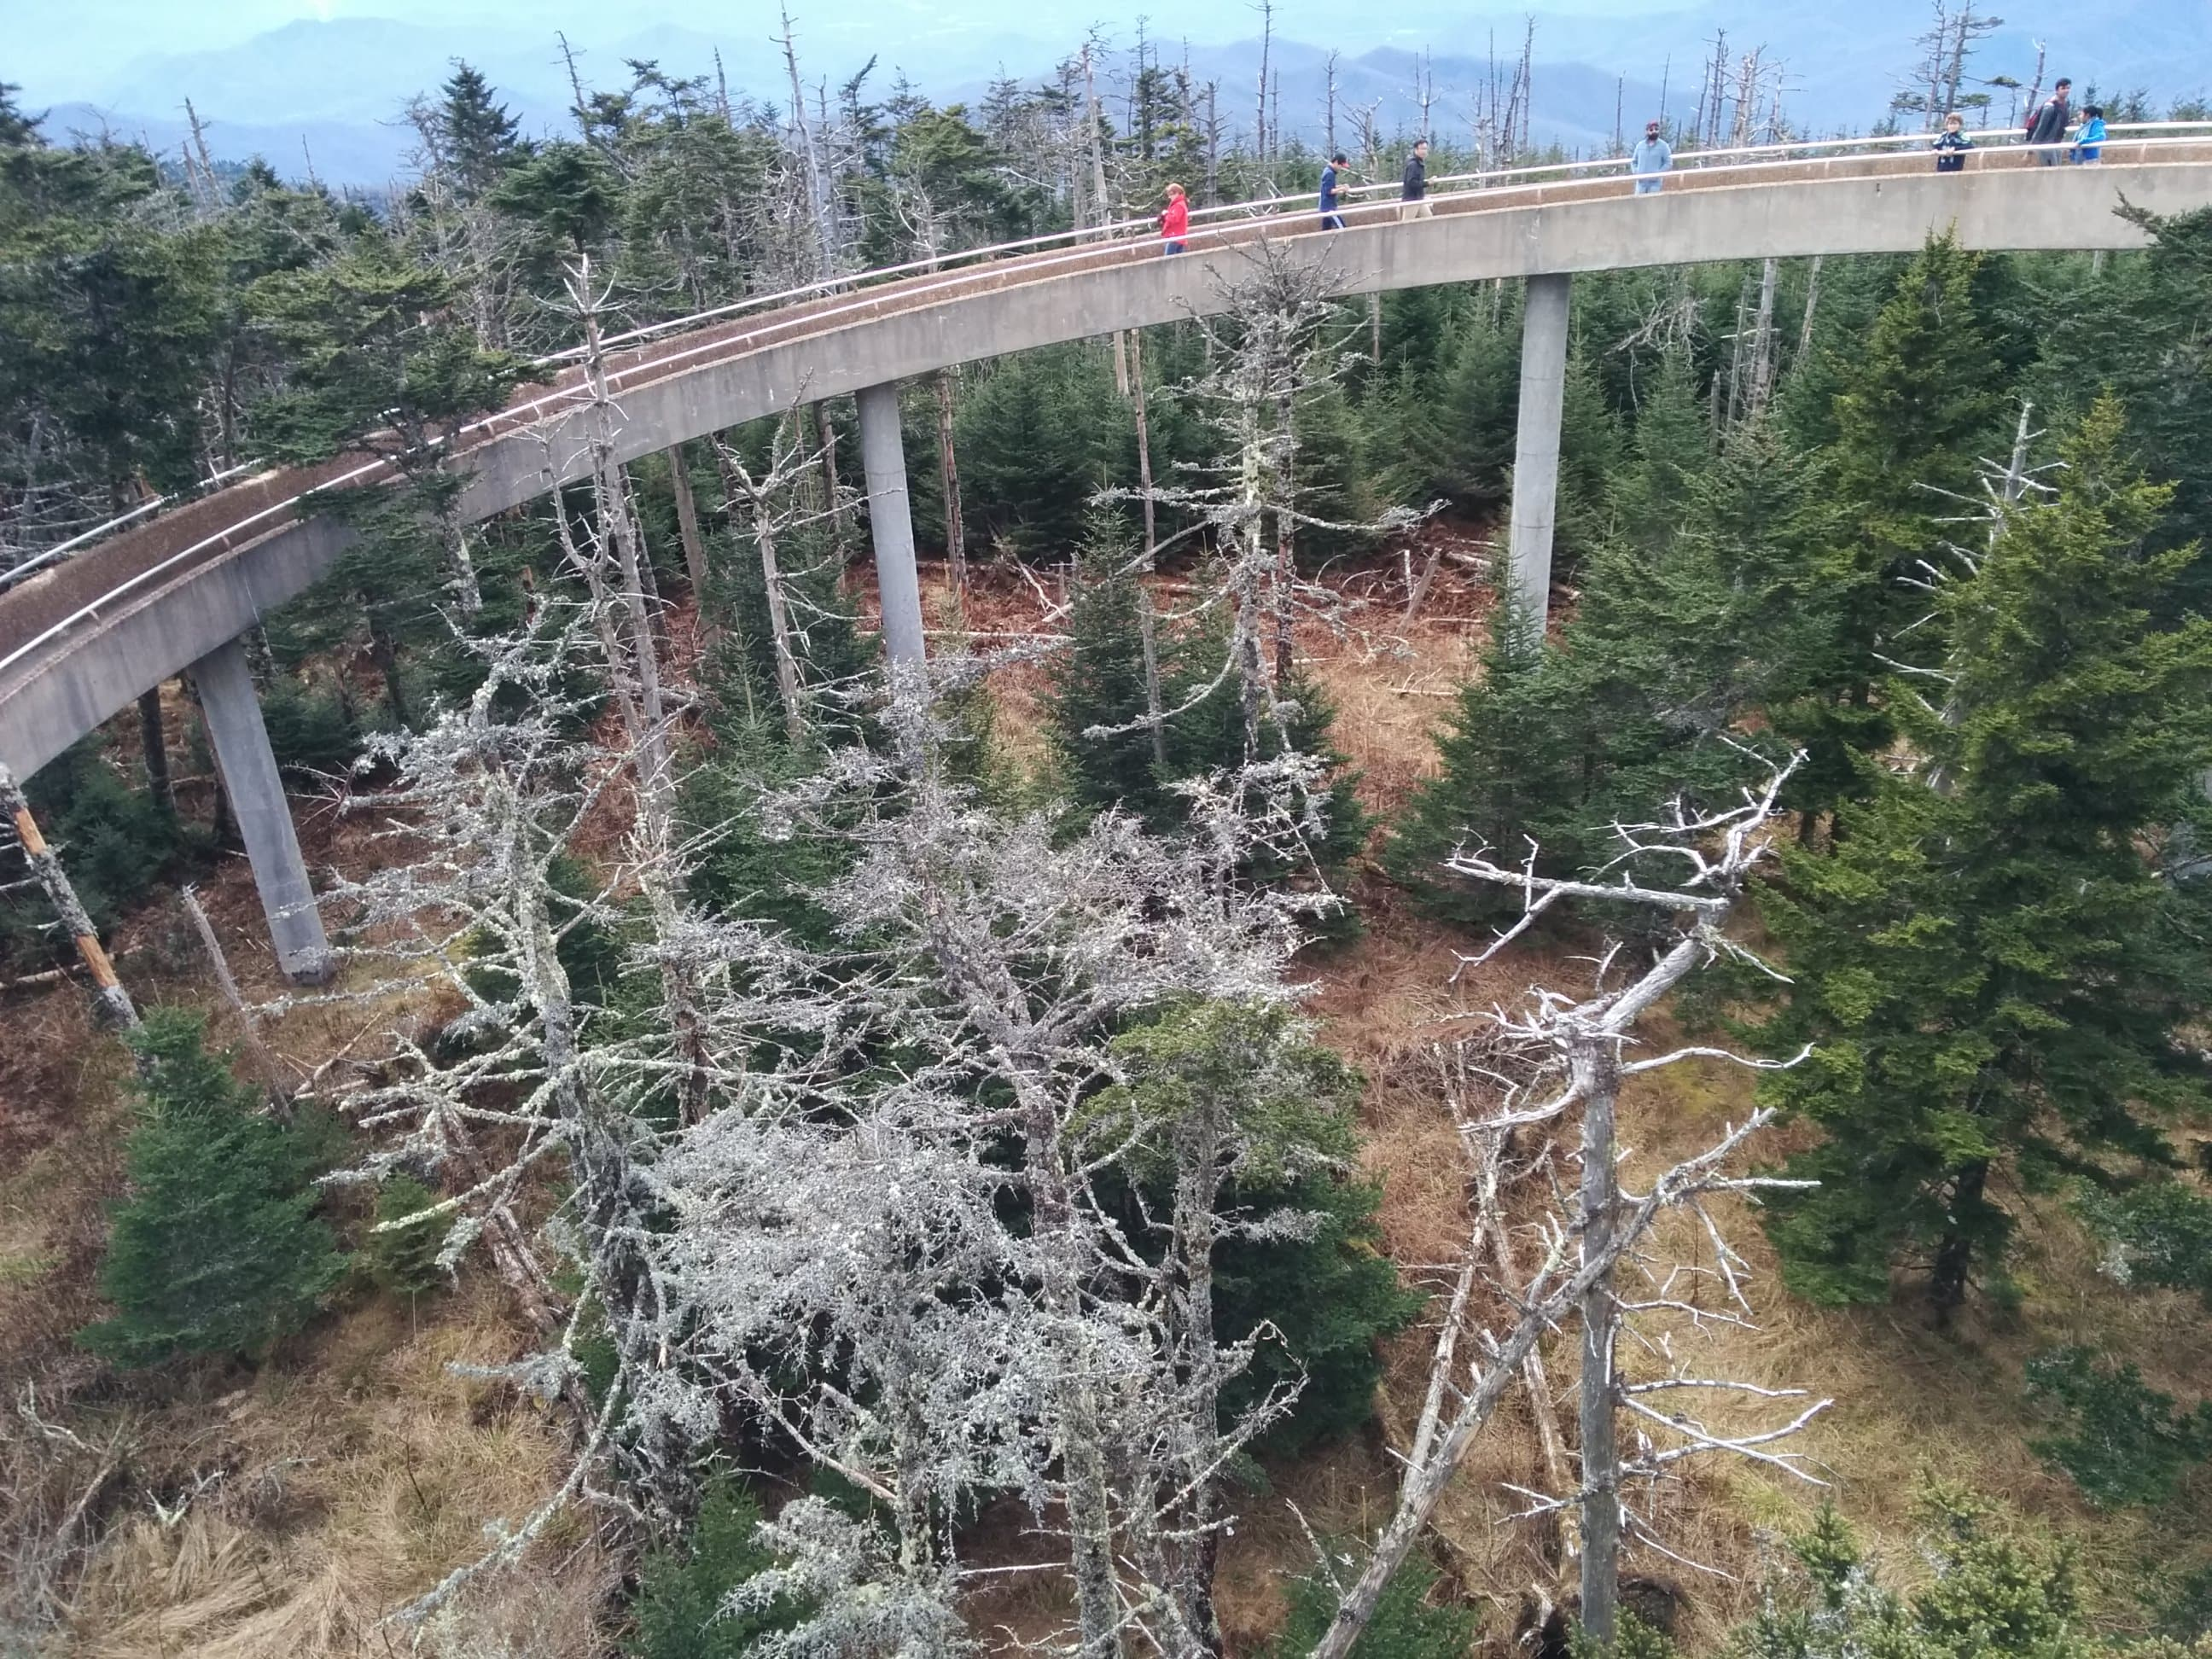 Bridge of Clingmans Dome